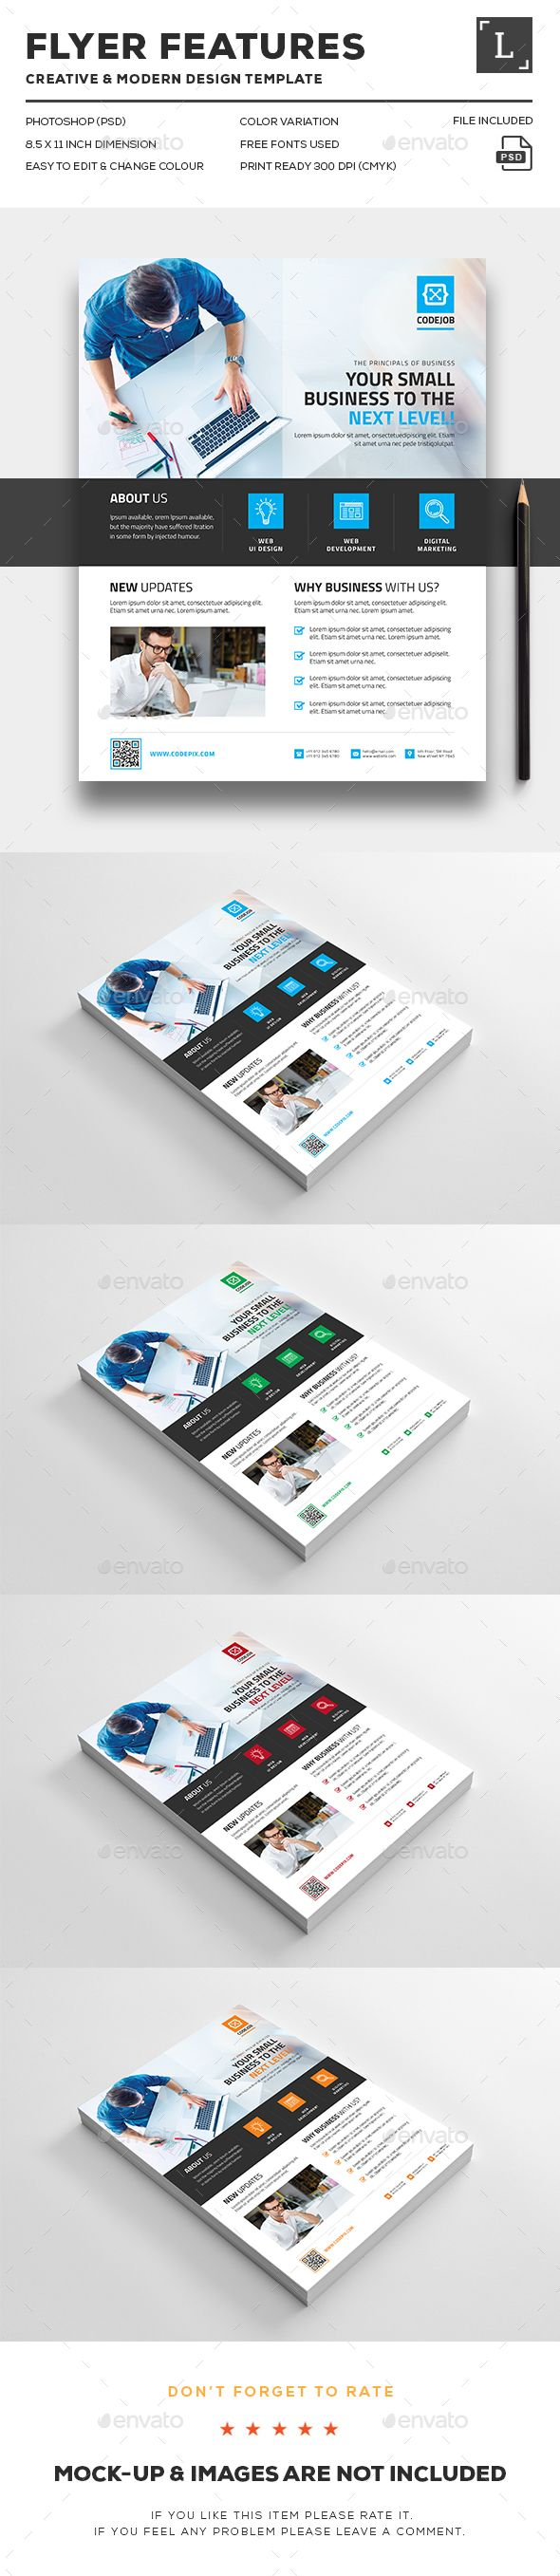 35 best banners images on Pinterest | Graph design, Graphics and ...